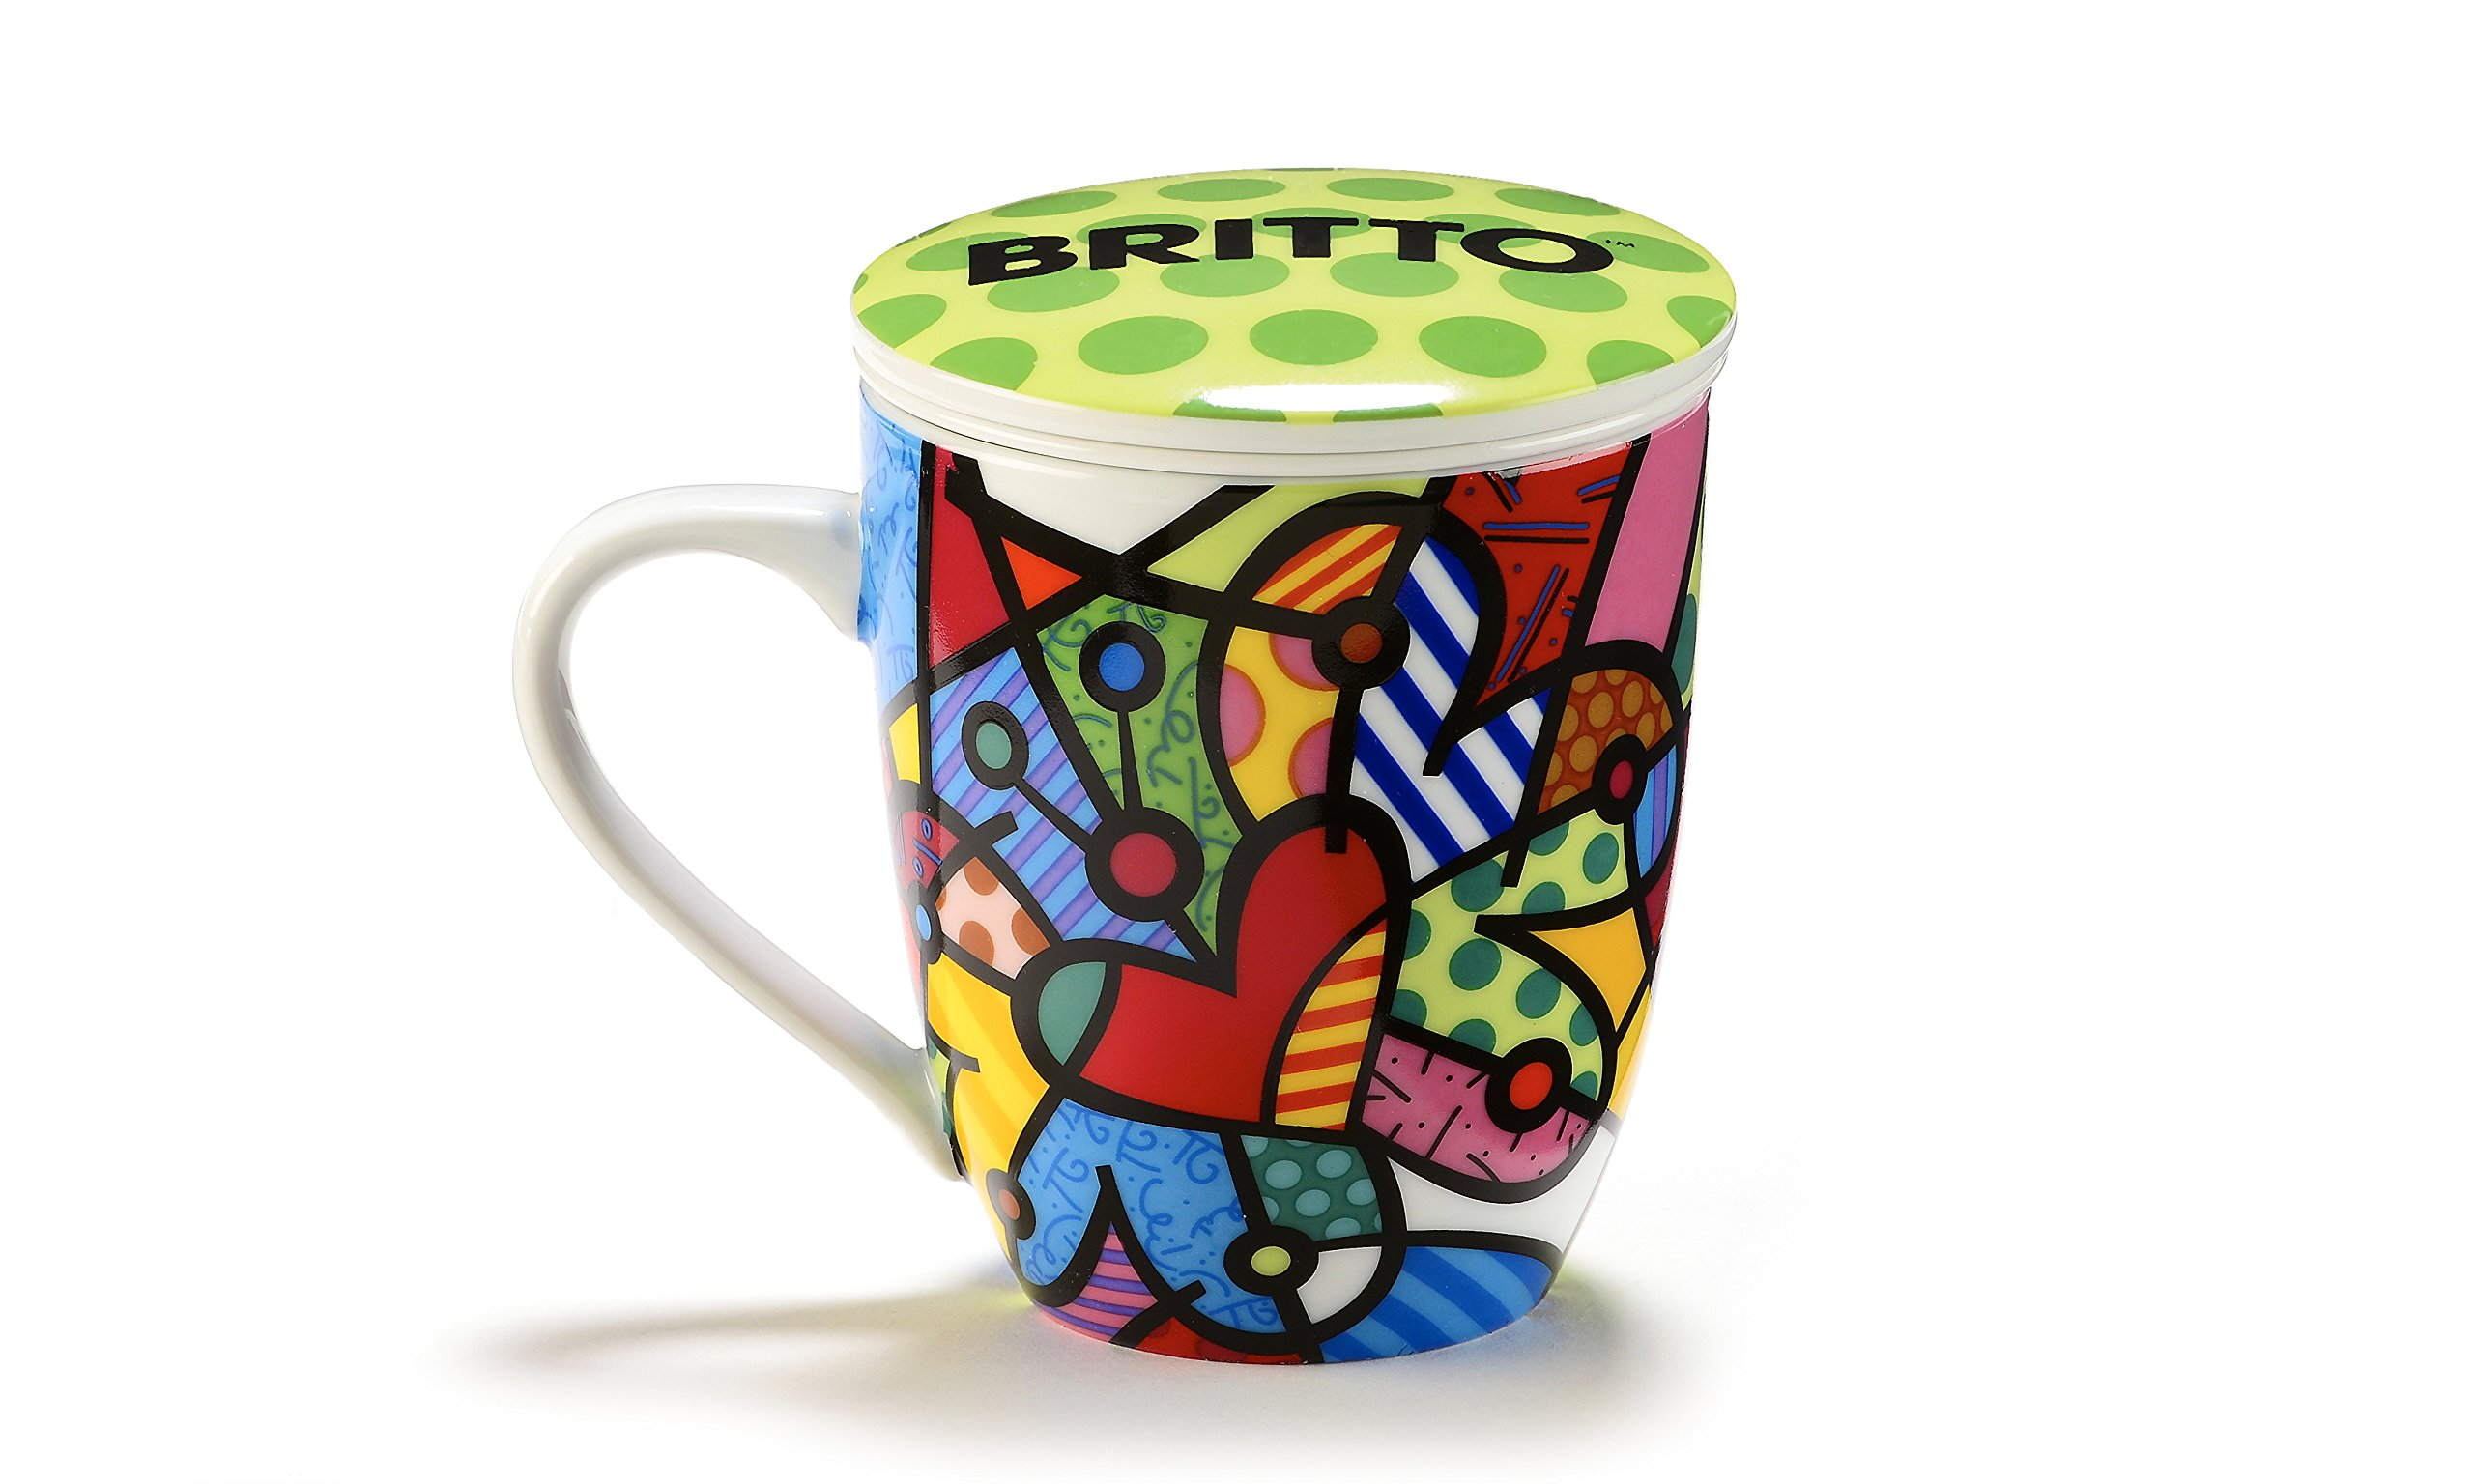 Romero Britto Porcelain Infuser Mug with Lid - Butterfly